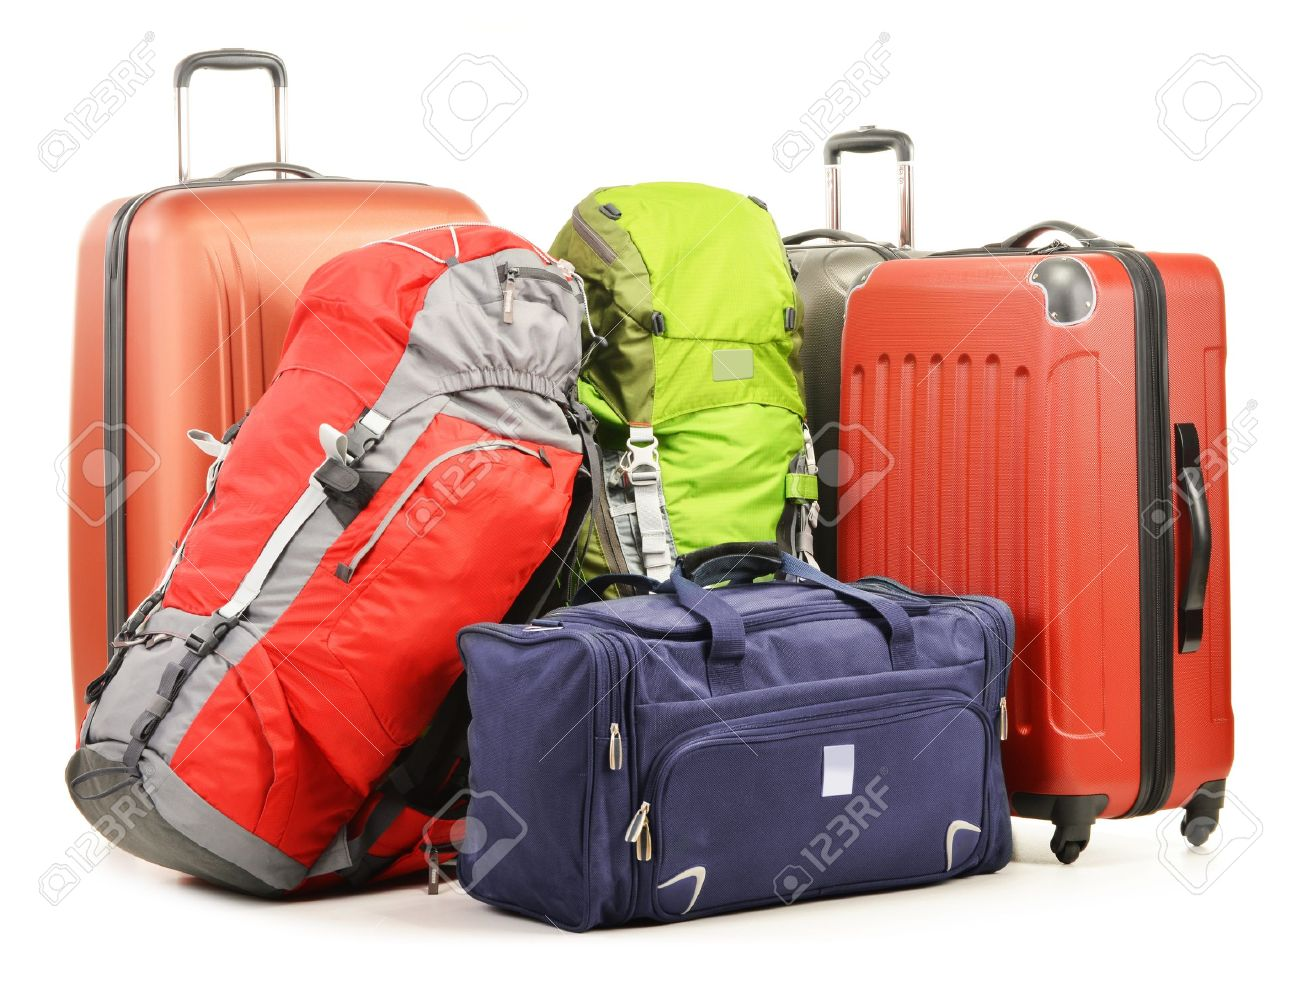 Luggage Consisting Of Large Suitcases Rucksacks And Travel Bag ...